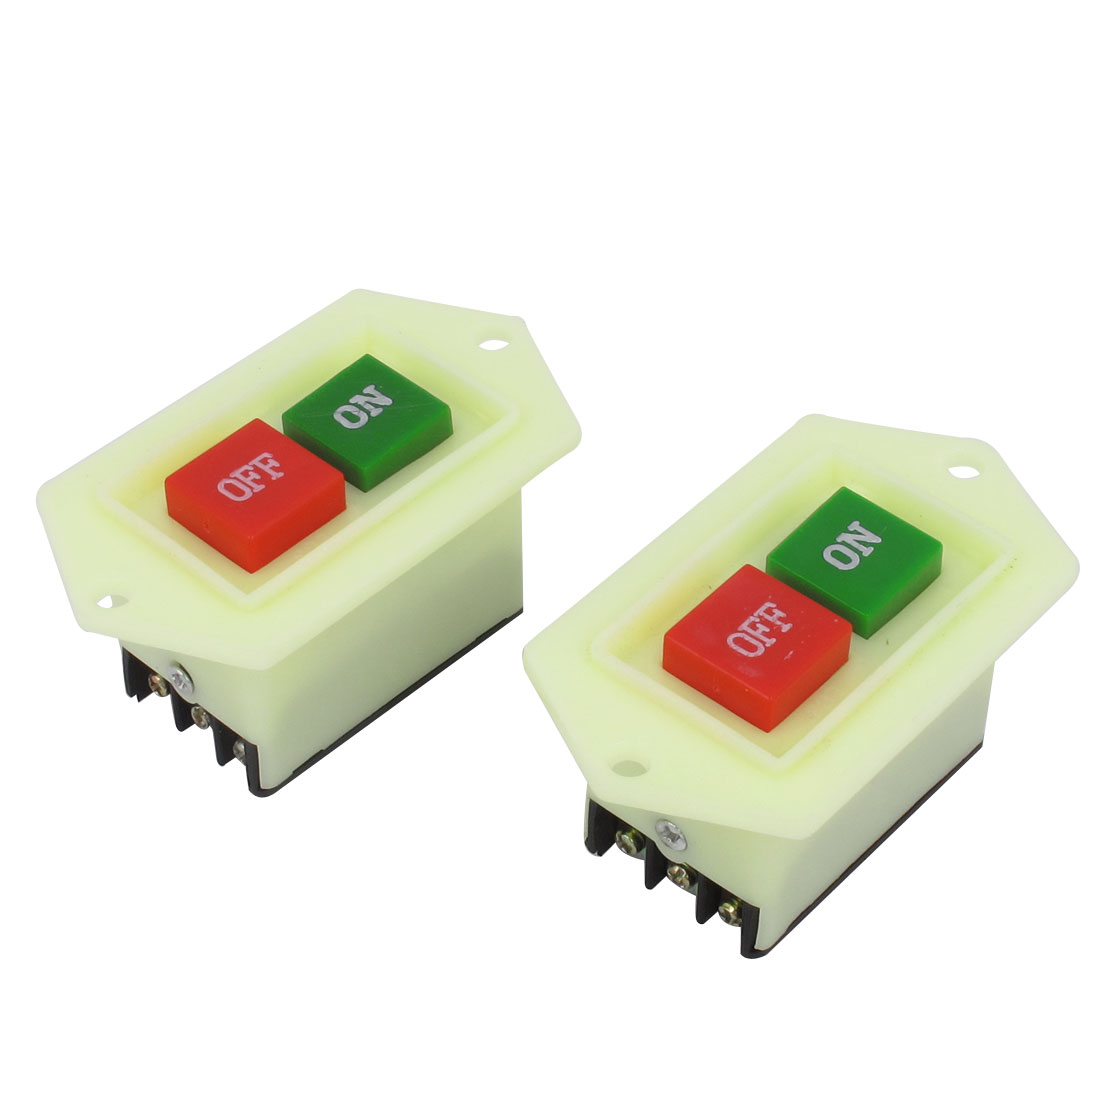 2pcs AC 380V 5A 3P1T Latching On/Off Push Button Switch for Bench Drill